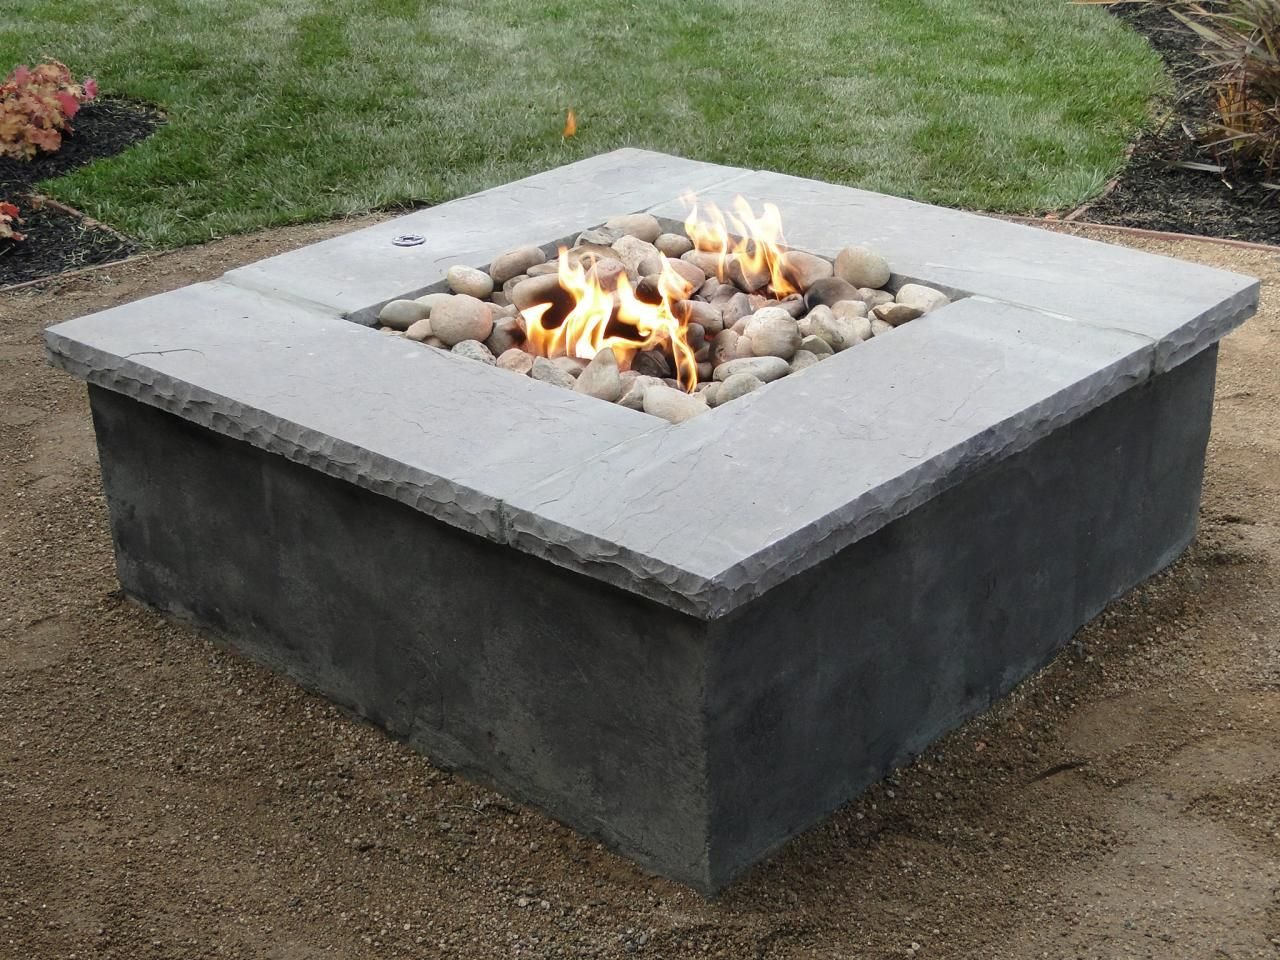 Diy Concrete Propane Fire Pit Fireplace Design Ideas Outdoor Propane Fire Pit Cinder Block Fire Pit Natural Gas Fire Pit